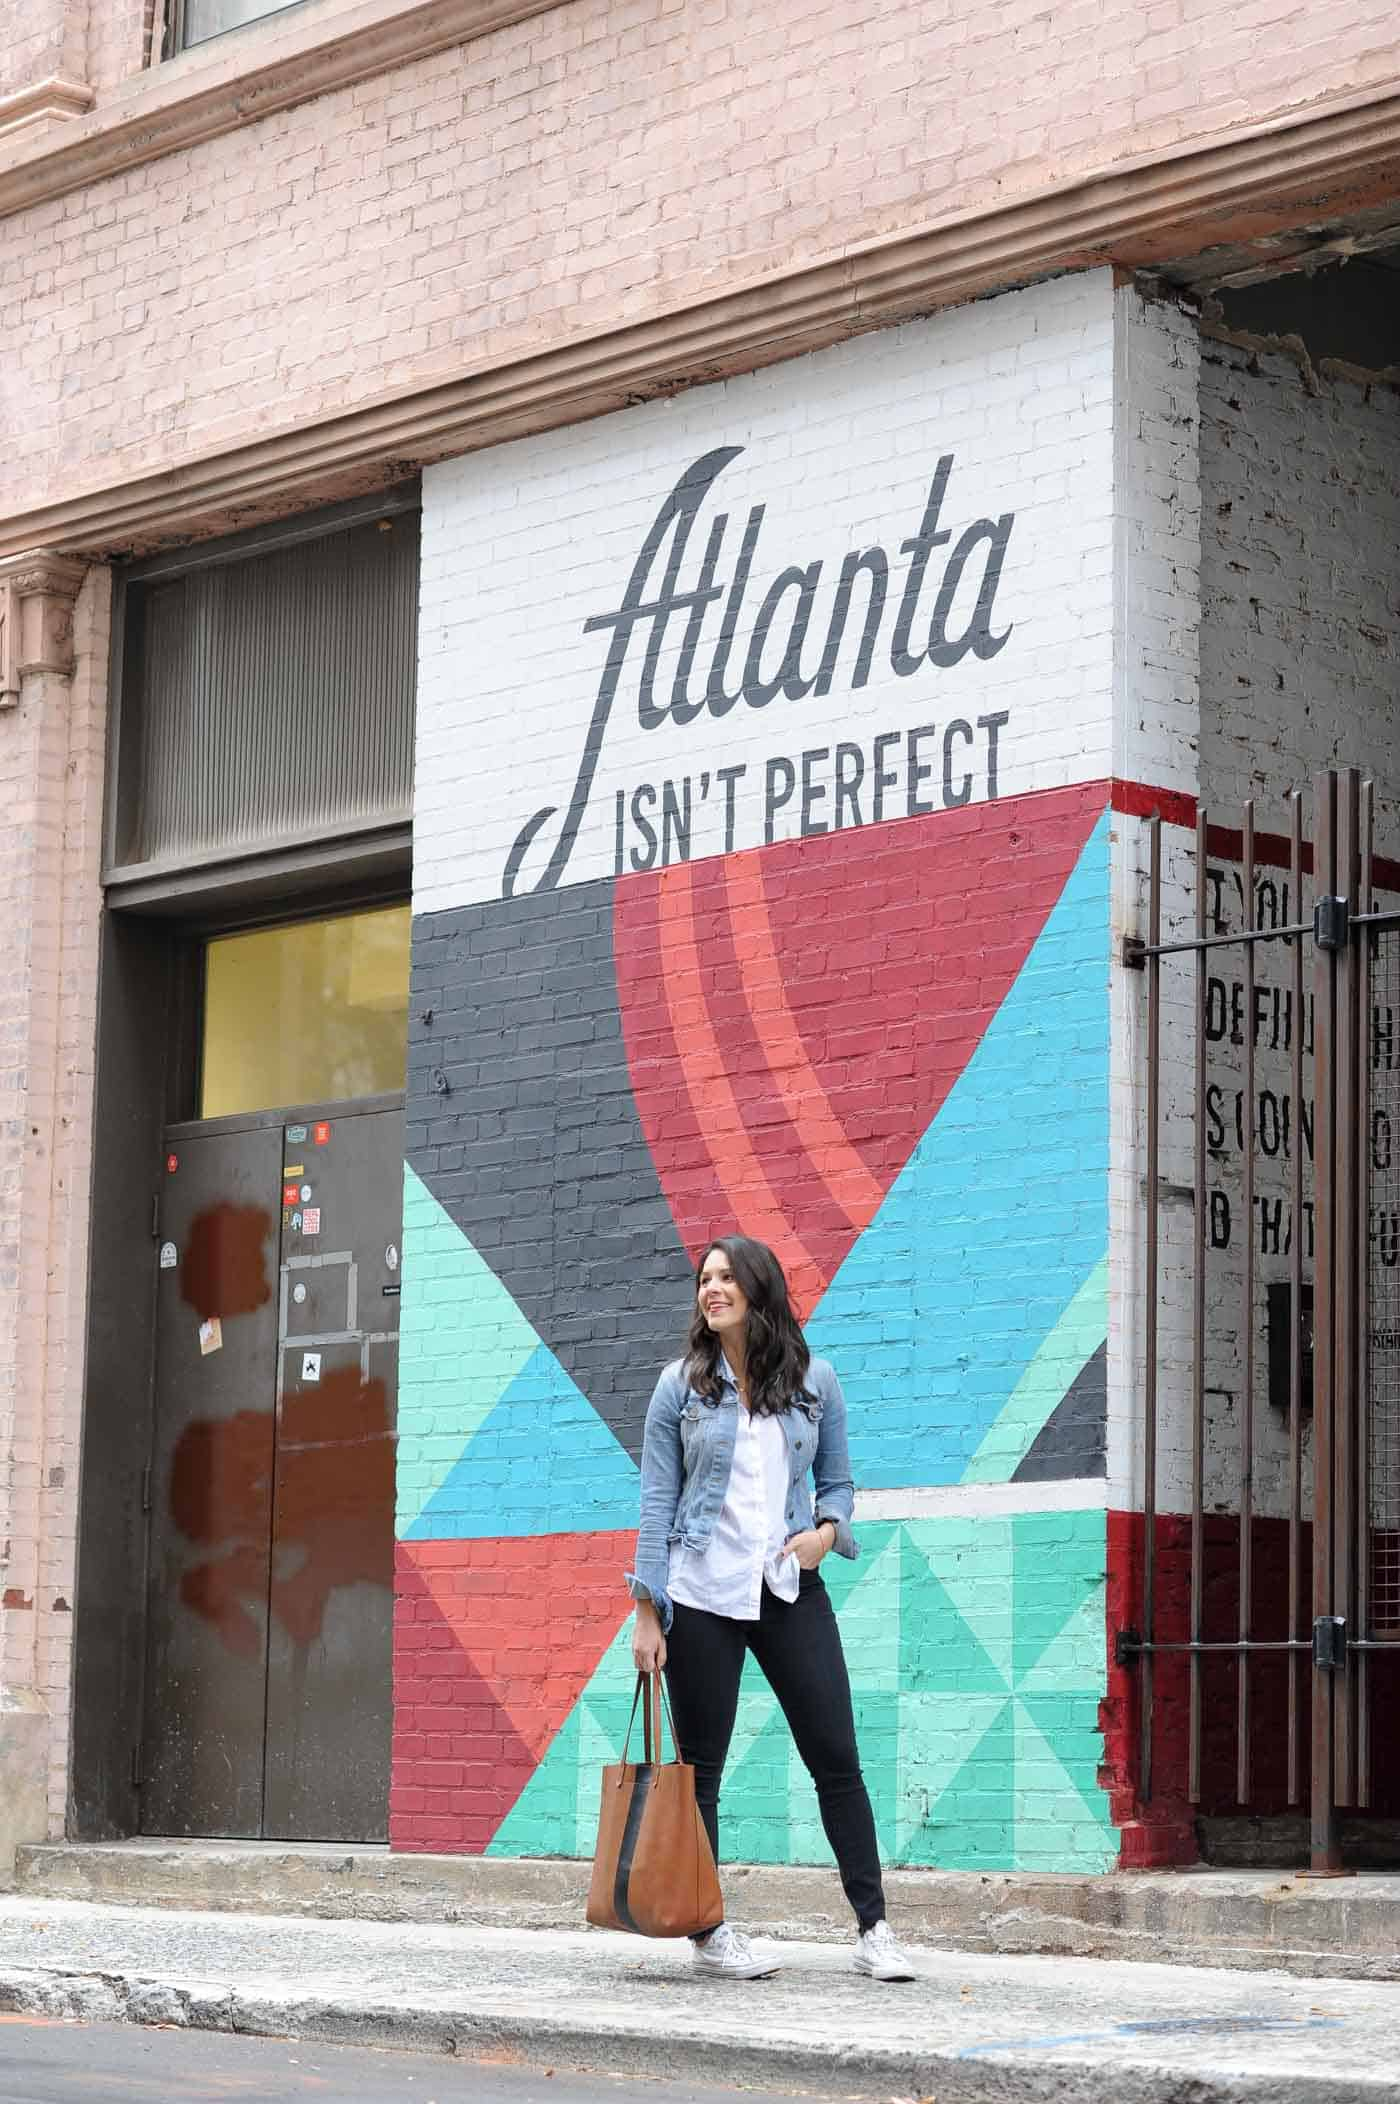 Atlanta Isn't Perfect mural, casual weekend outfit - My Style Vita @mystylevita